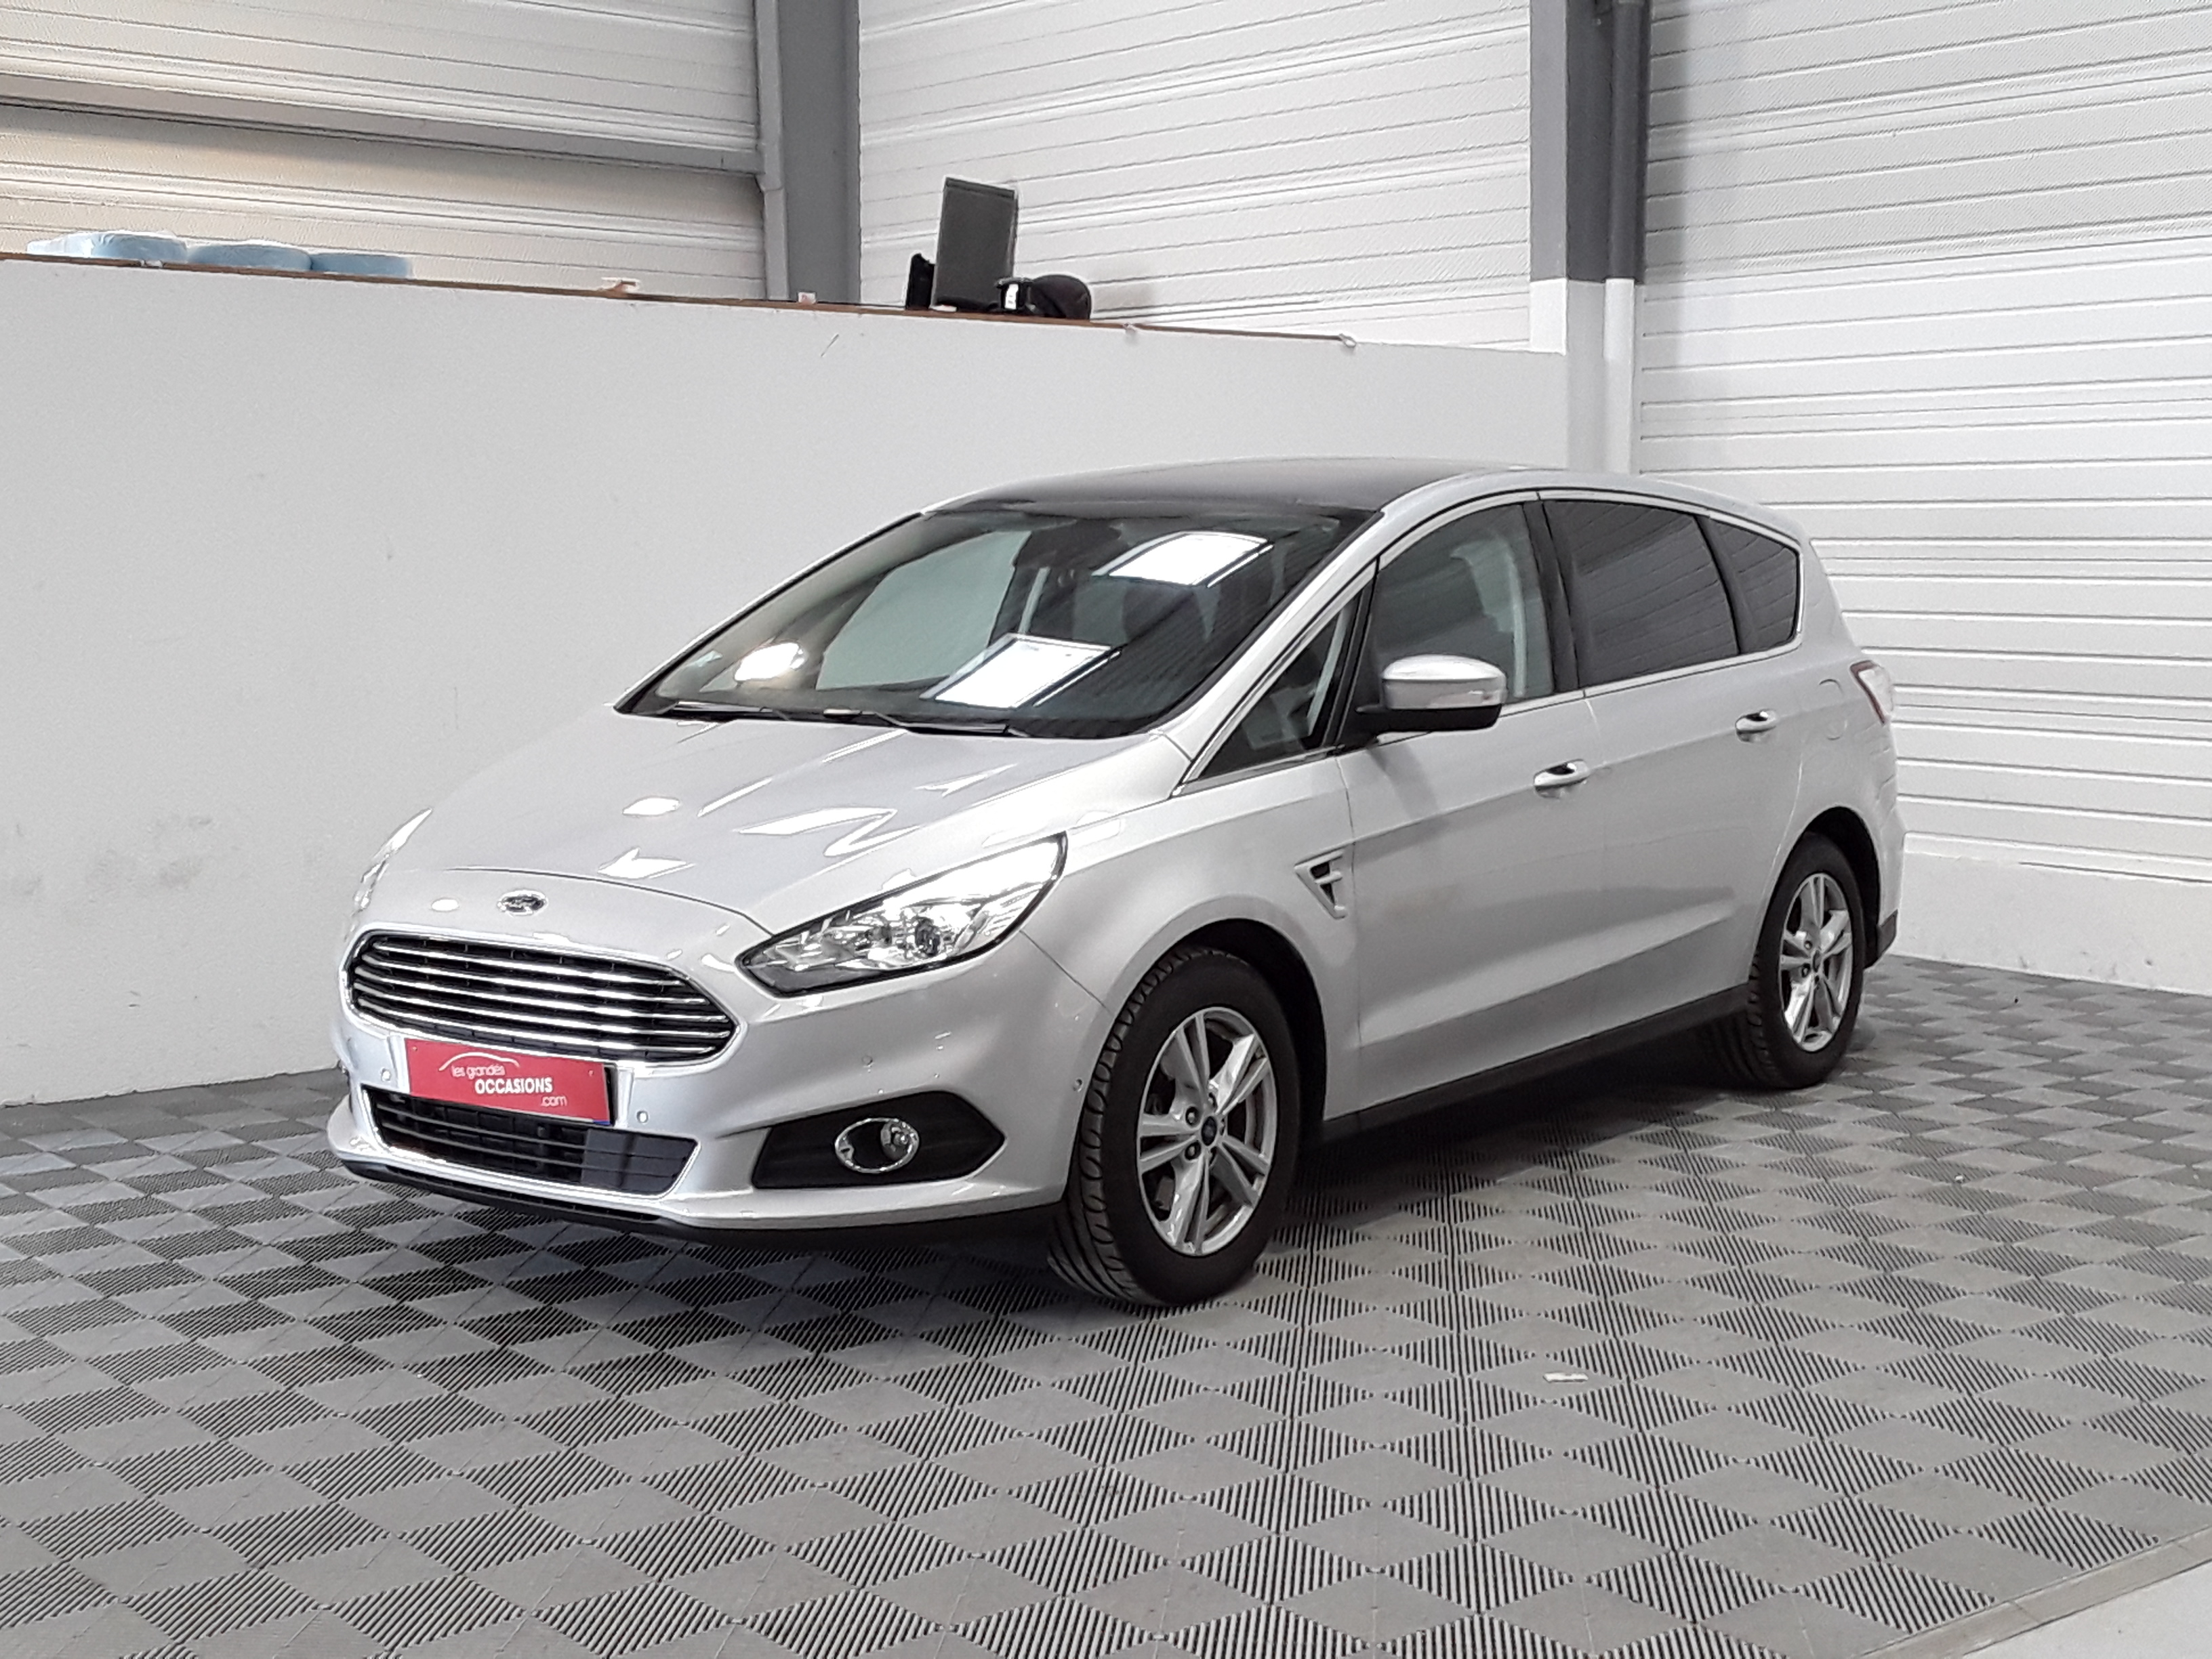 FORD S-MAX 2.0 TDCi 150 S&S Titanium Powershift A d'occasion